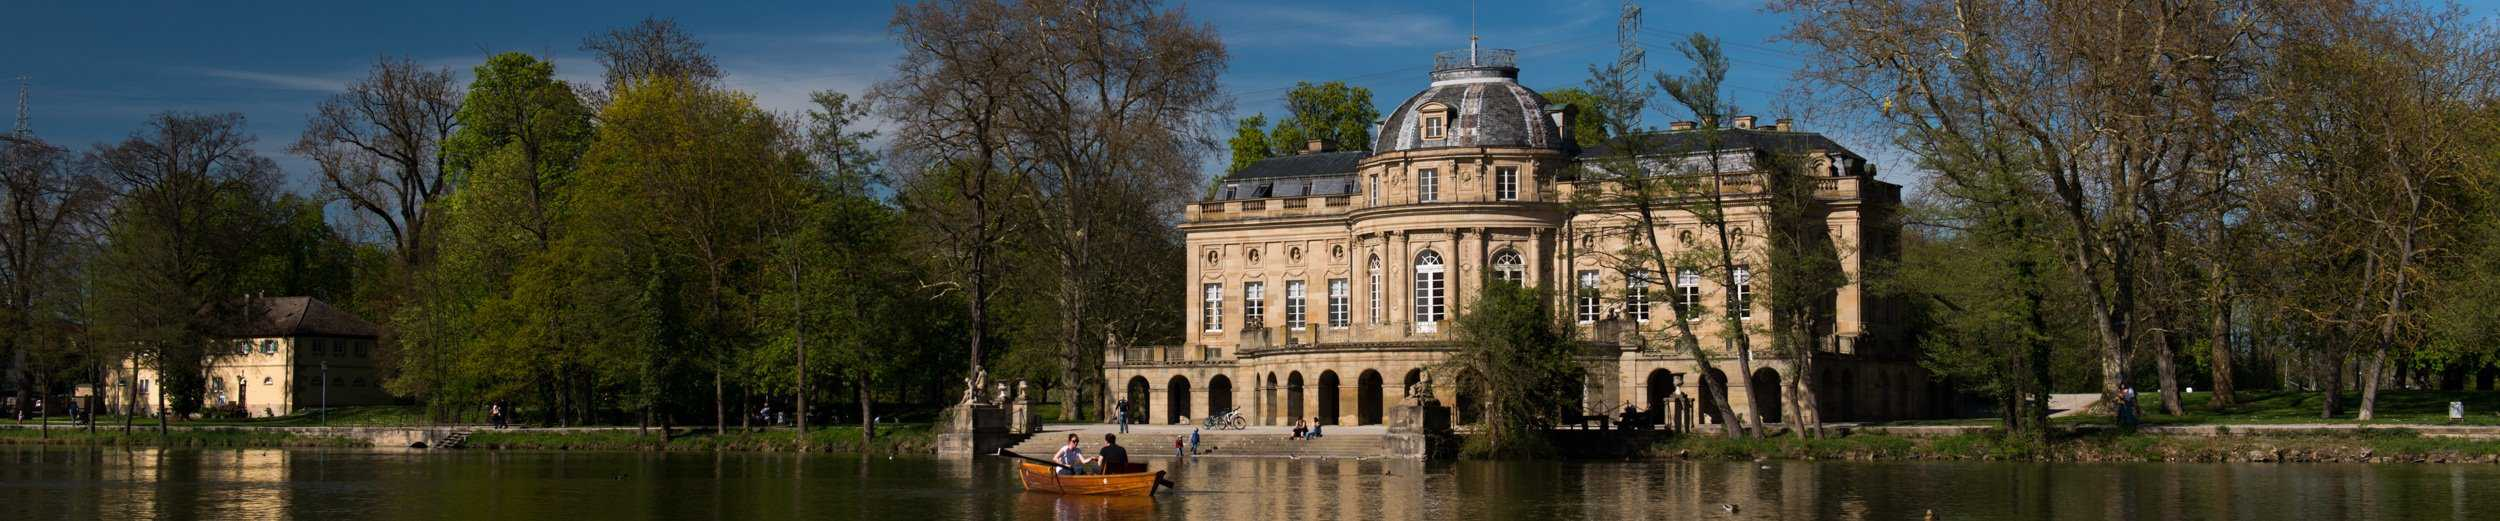 Rowing on the lake at Monrepos Castle in Baden-Württemberg.